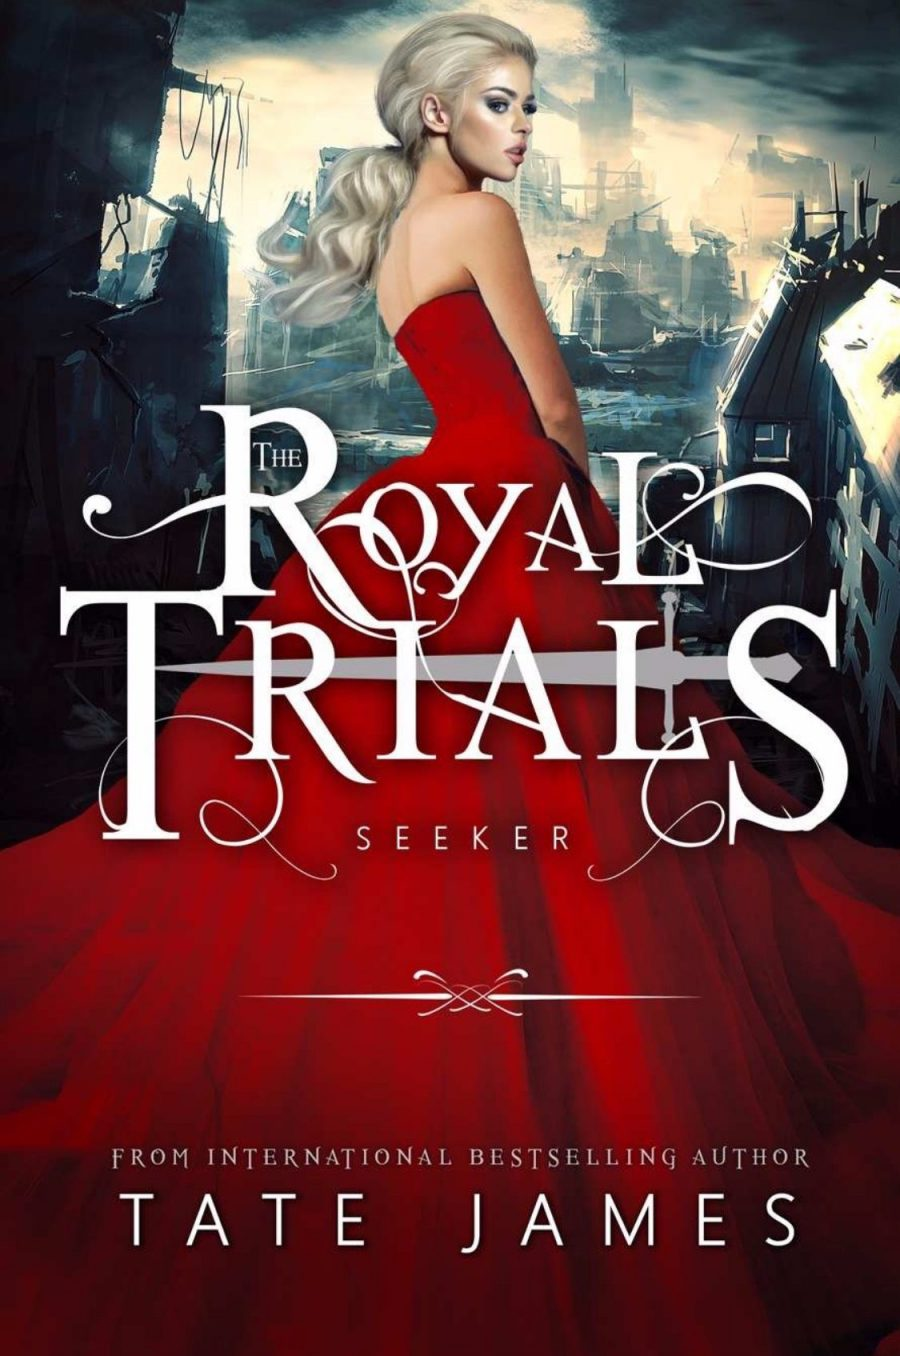 Royal Trial: Seeker by Tate James - A Book Review #BookReview #RH #WhyChoose #ReverseHarem #Fantasy #5Star #MustRead